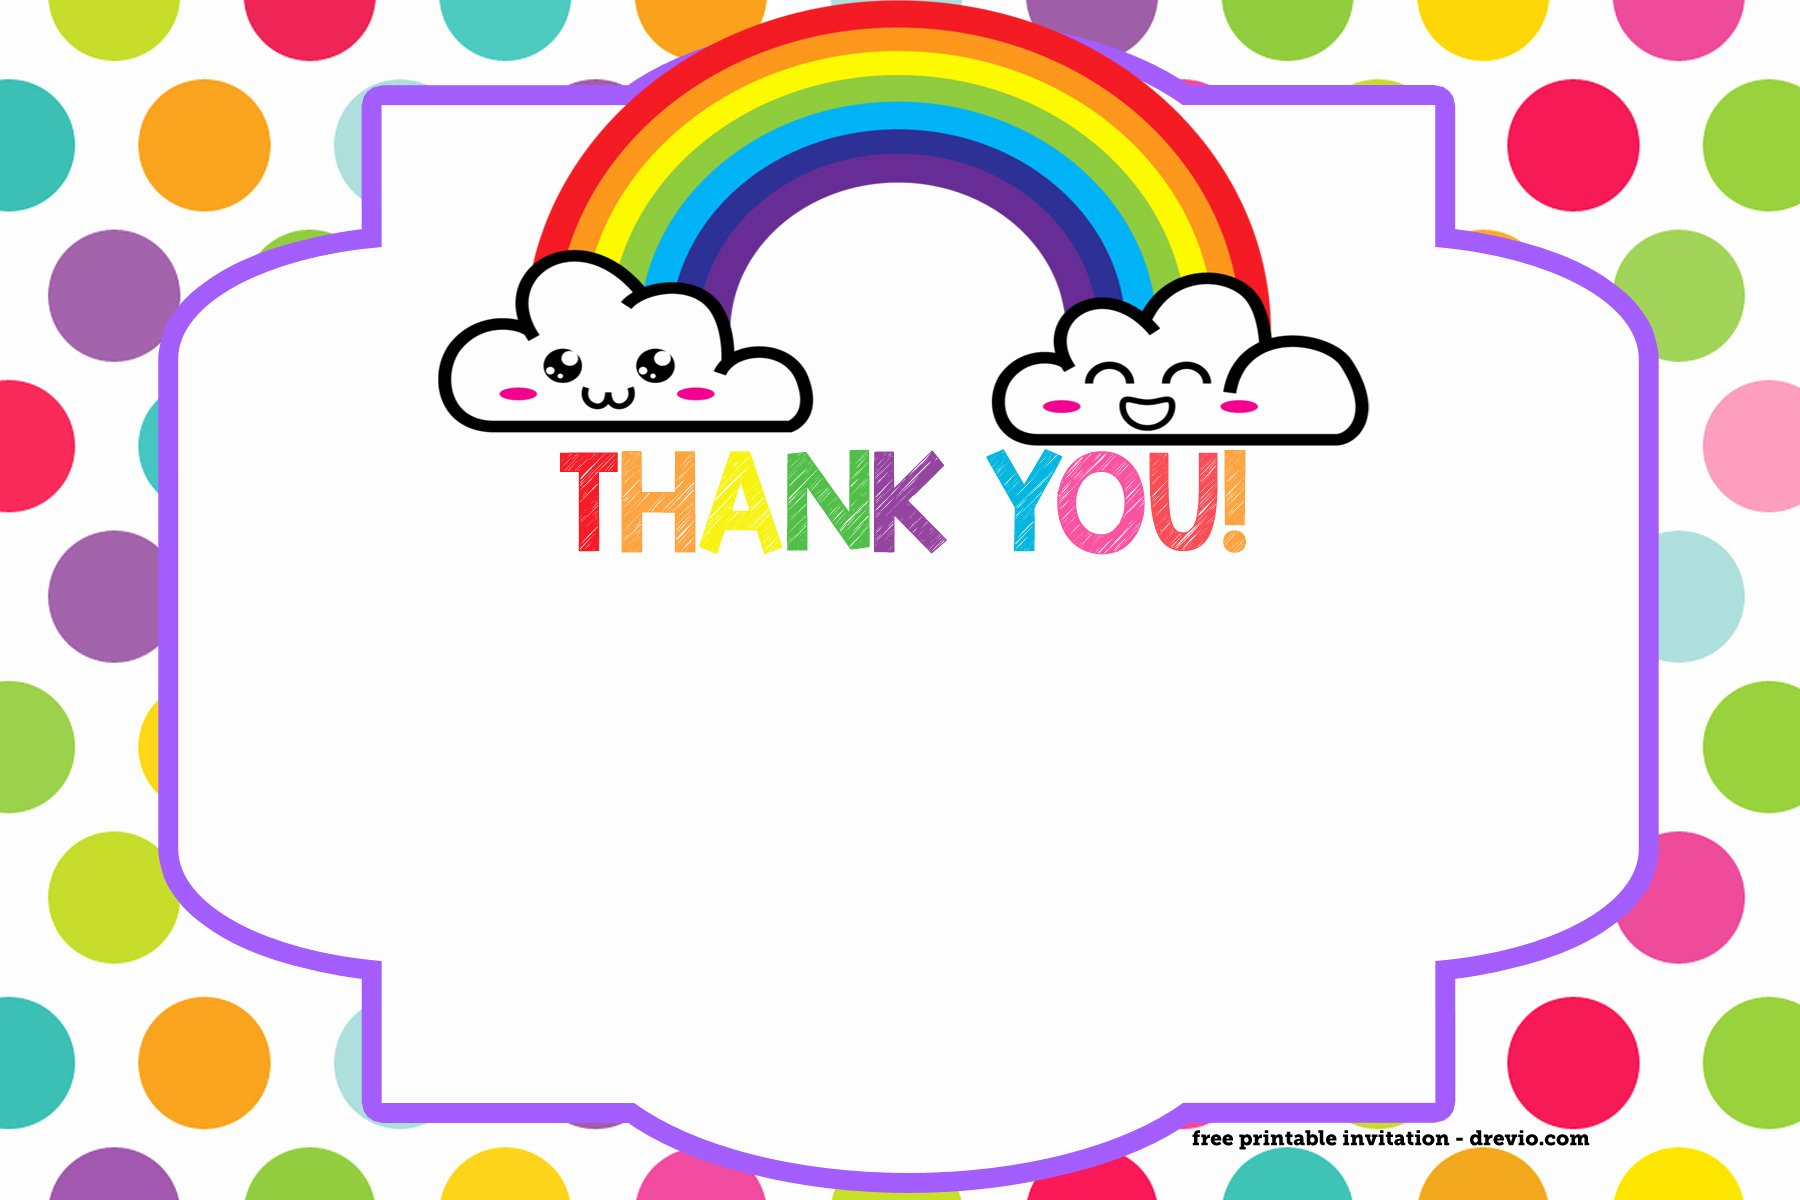 Free Printable Rainbow Invitation Template Thank You